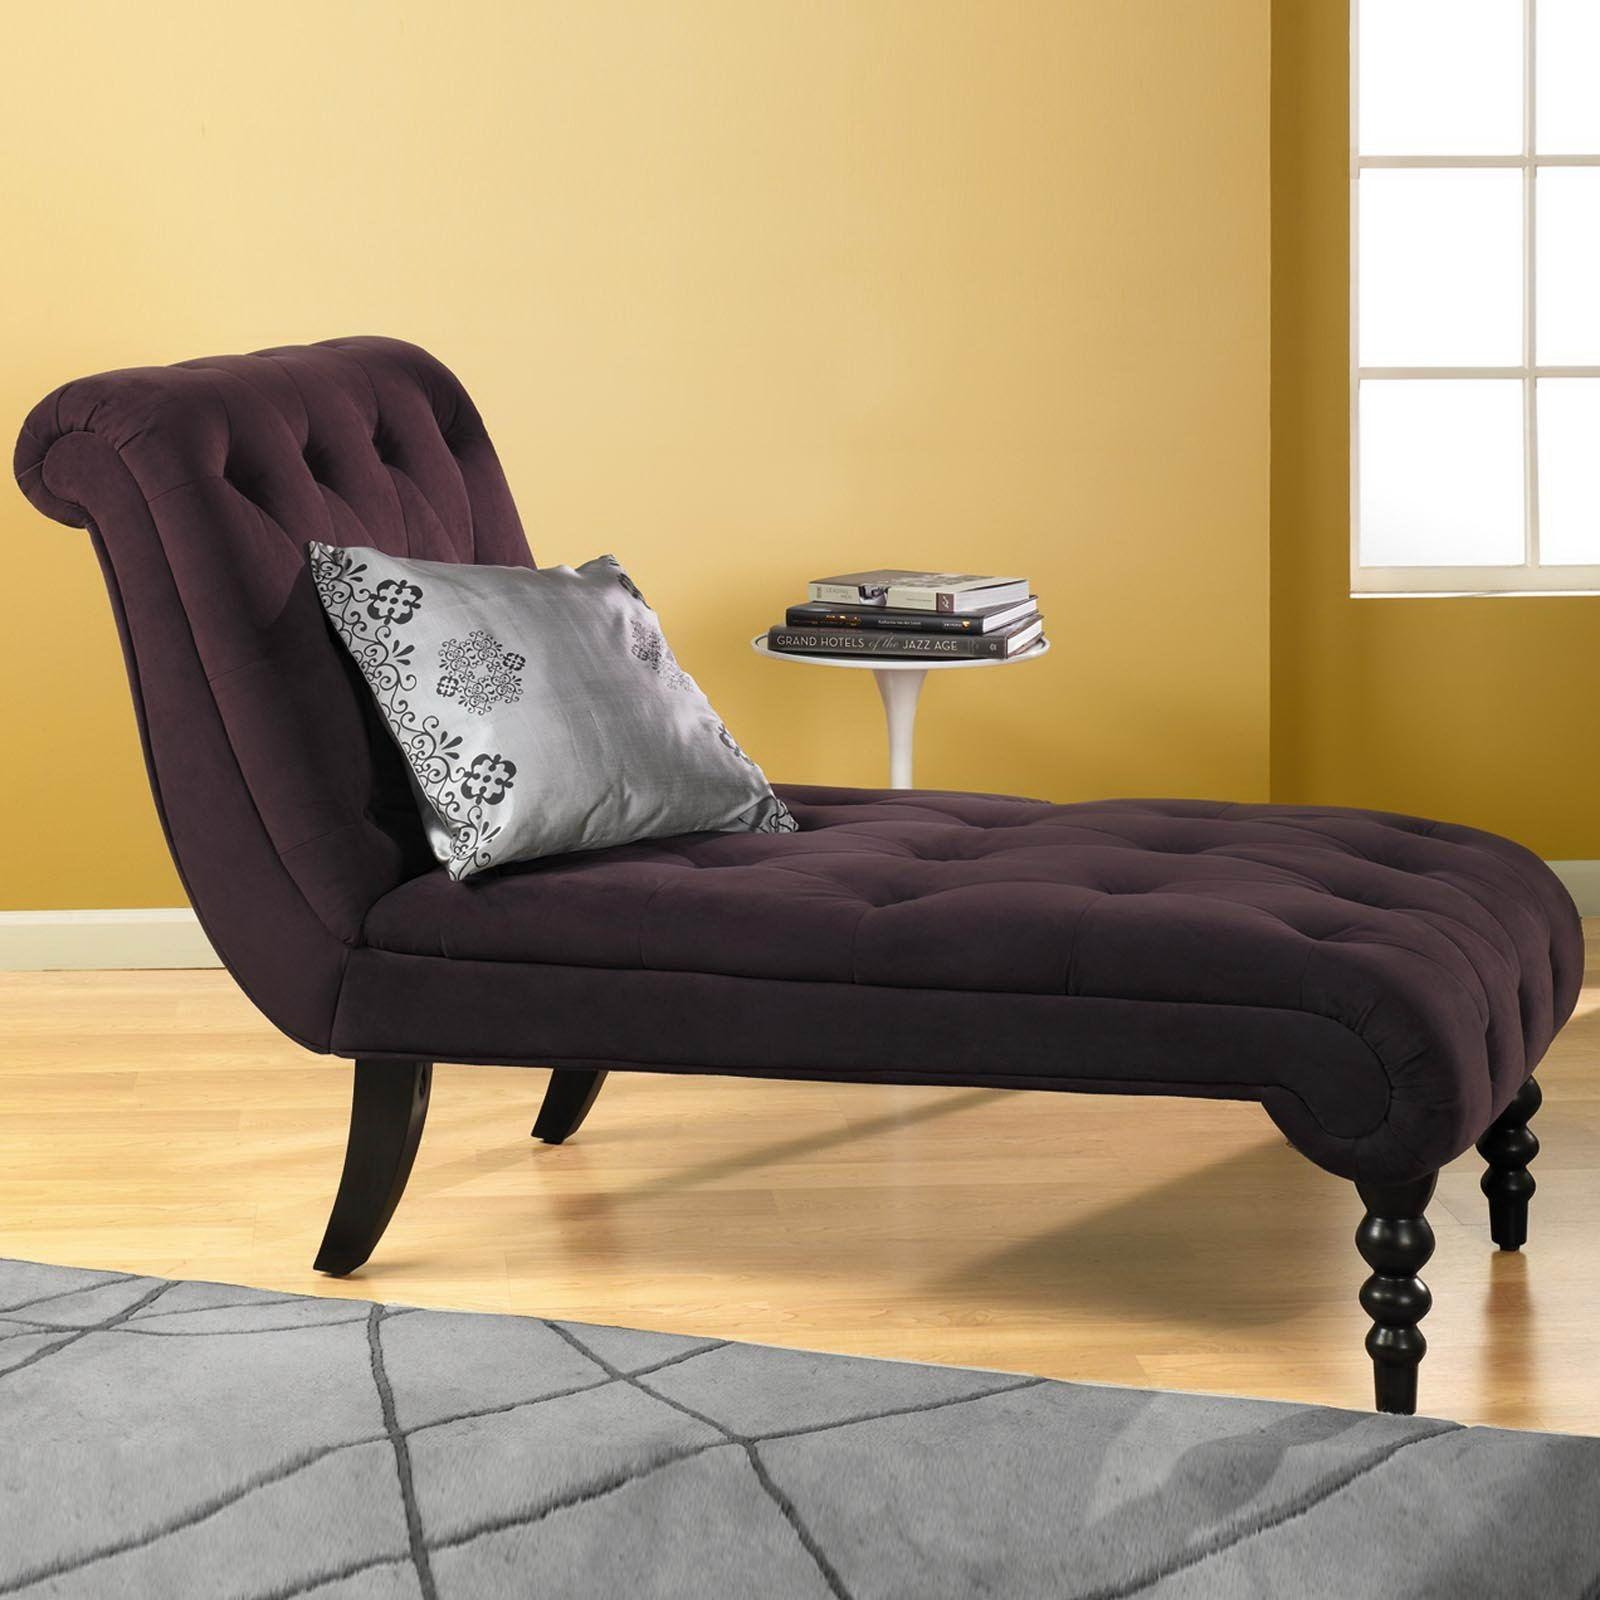 20 collection of chaise sofa chairs sofa ideas for Chaise lounge cheap uk